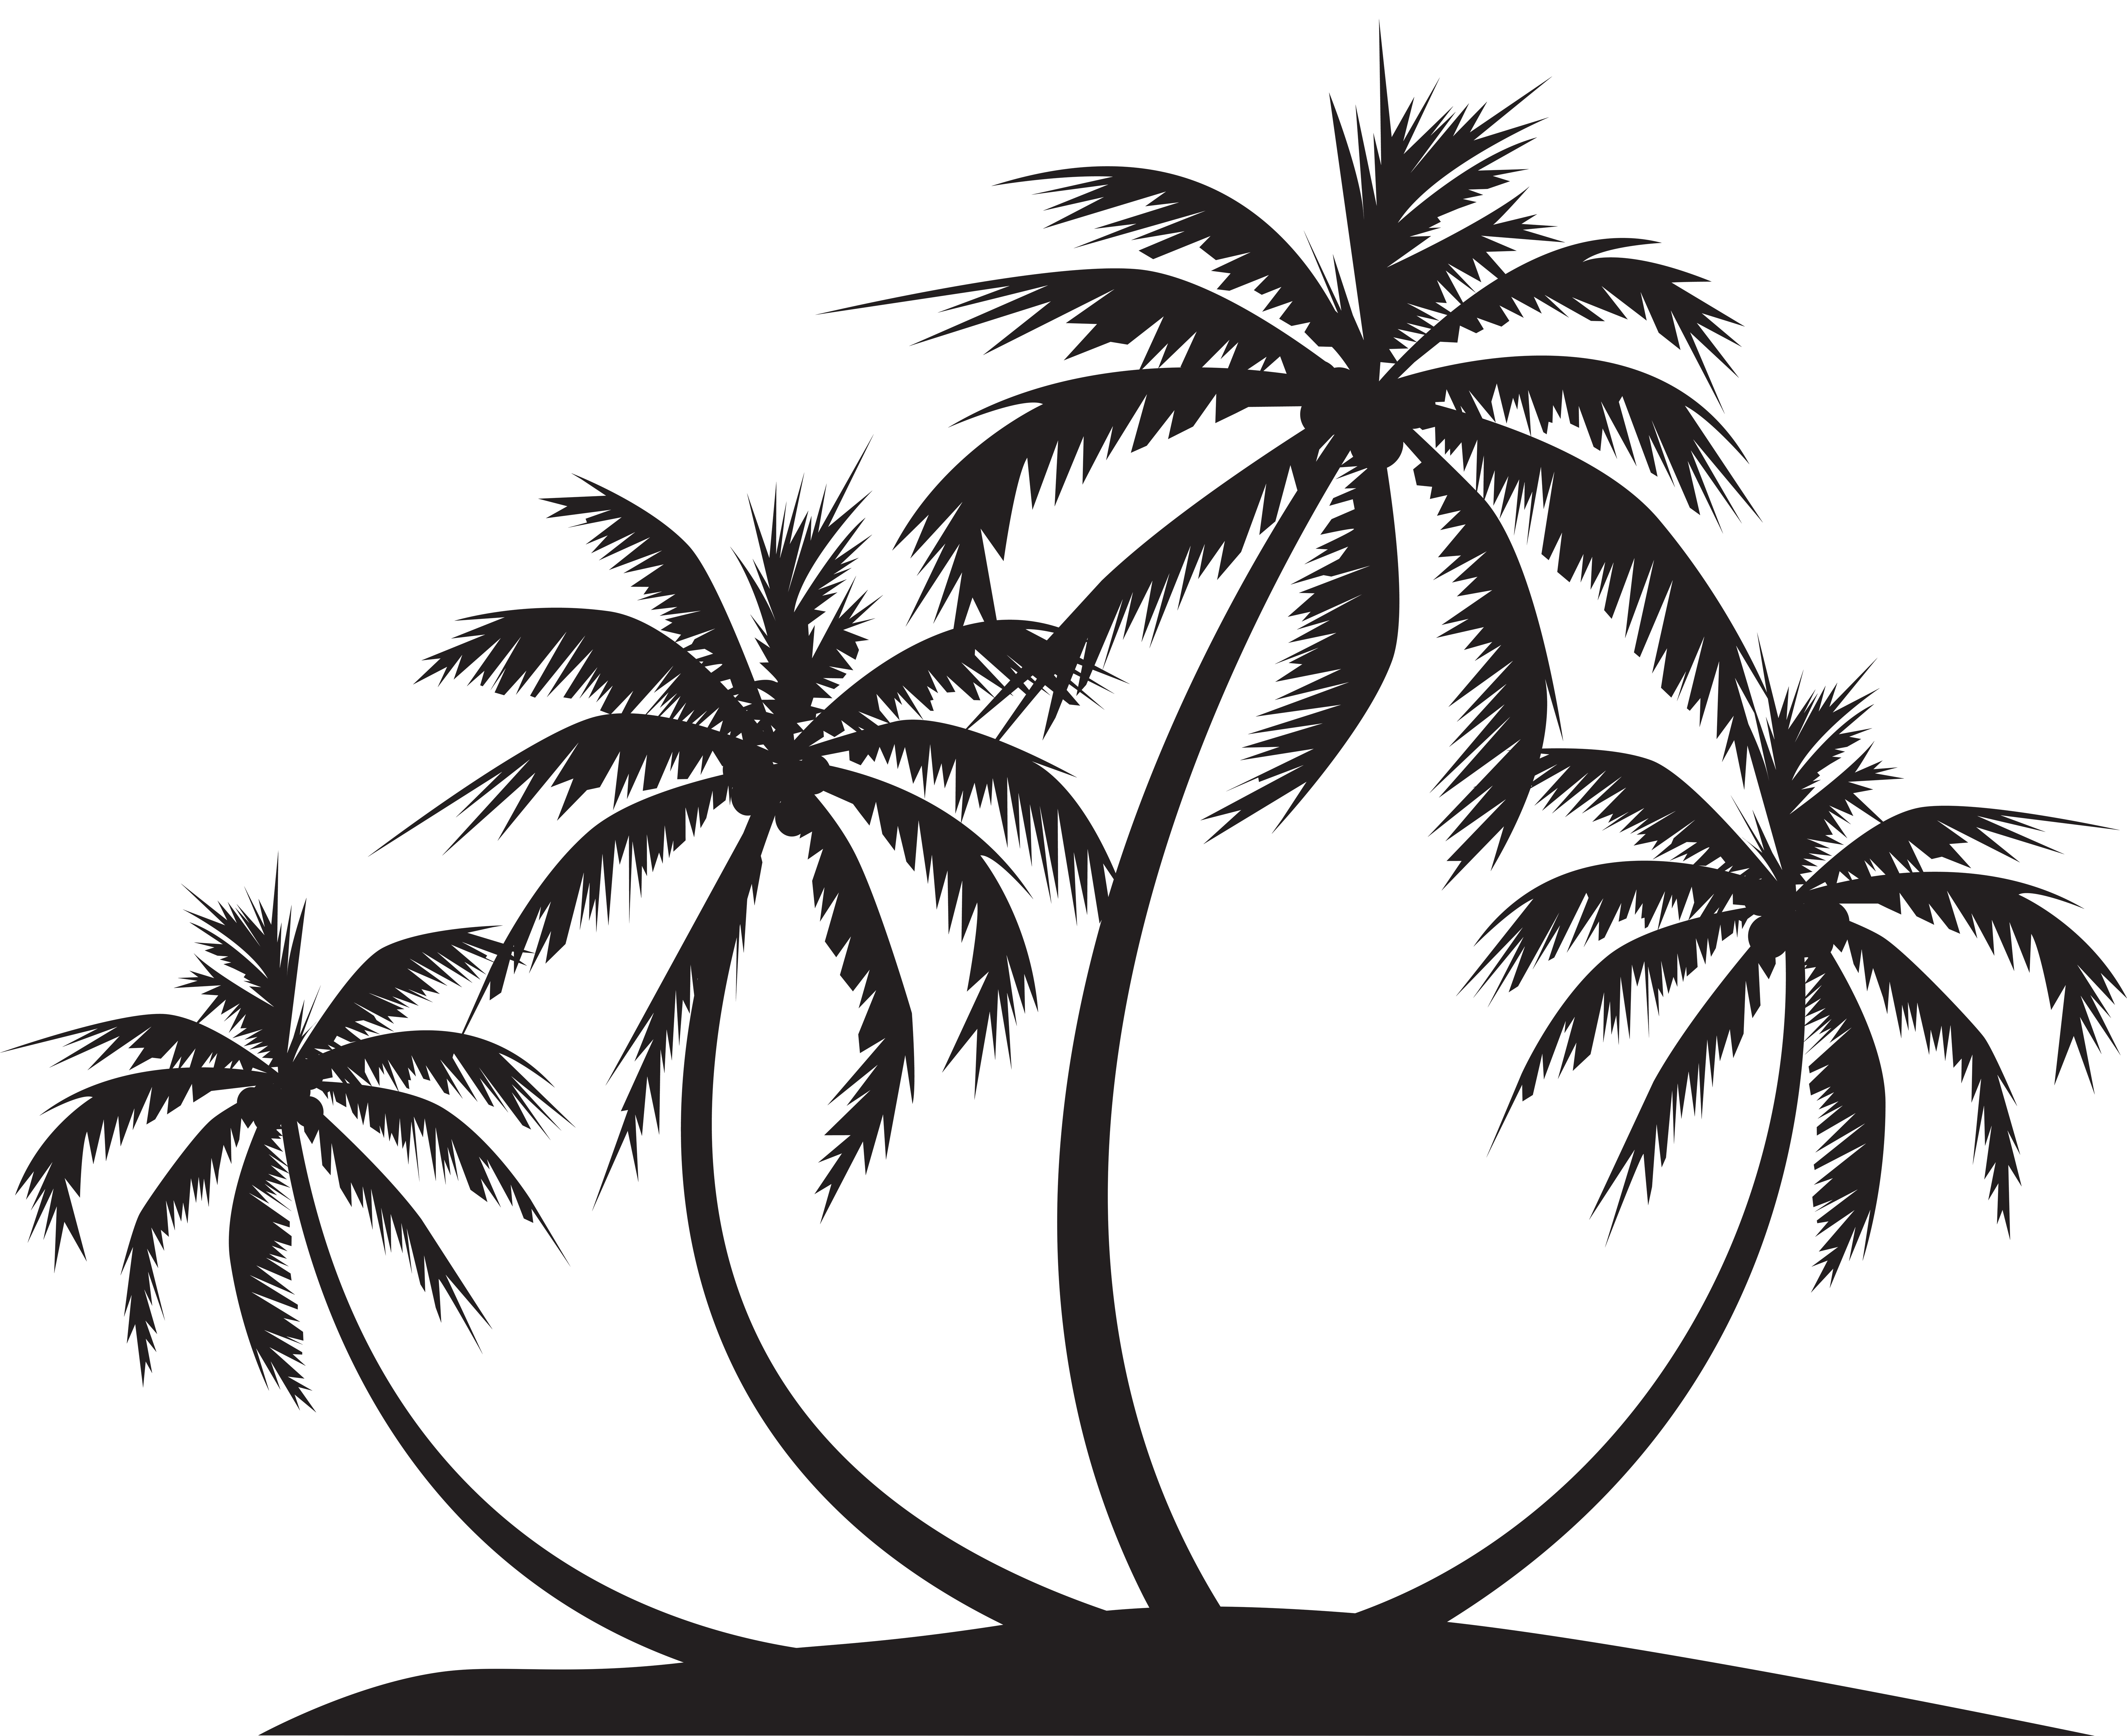 Palm tree clipart black and white png. Island silhouette clip art